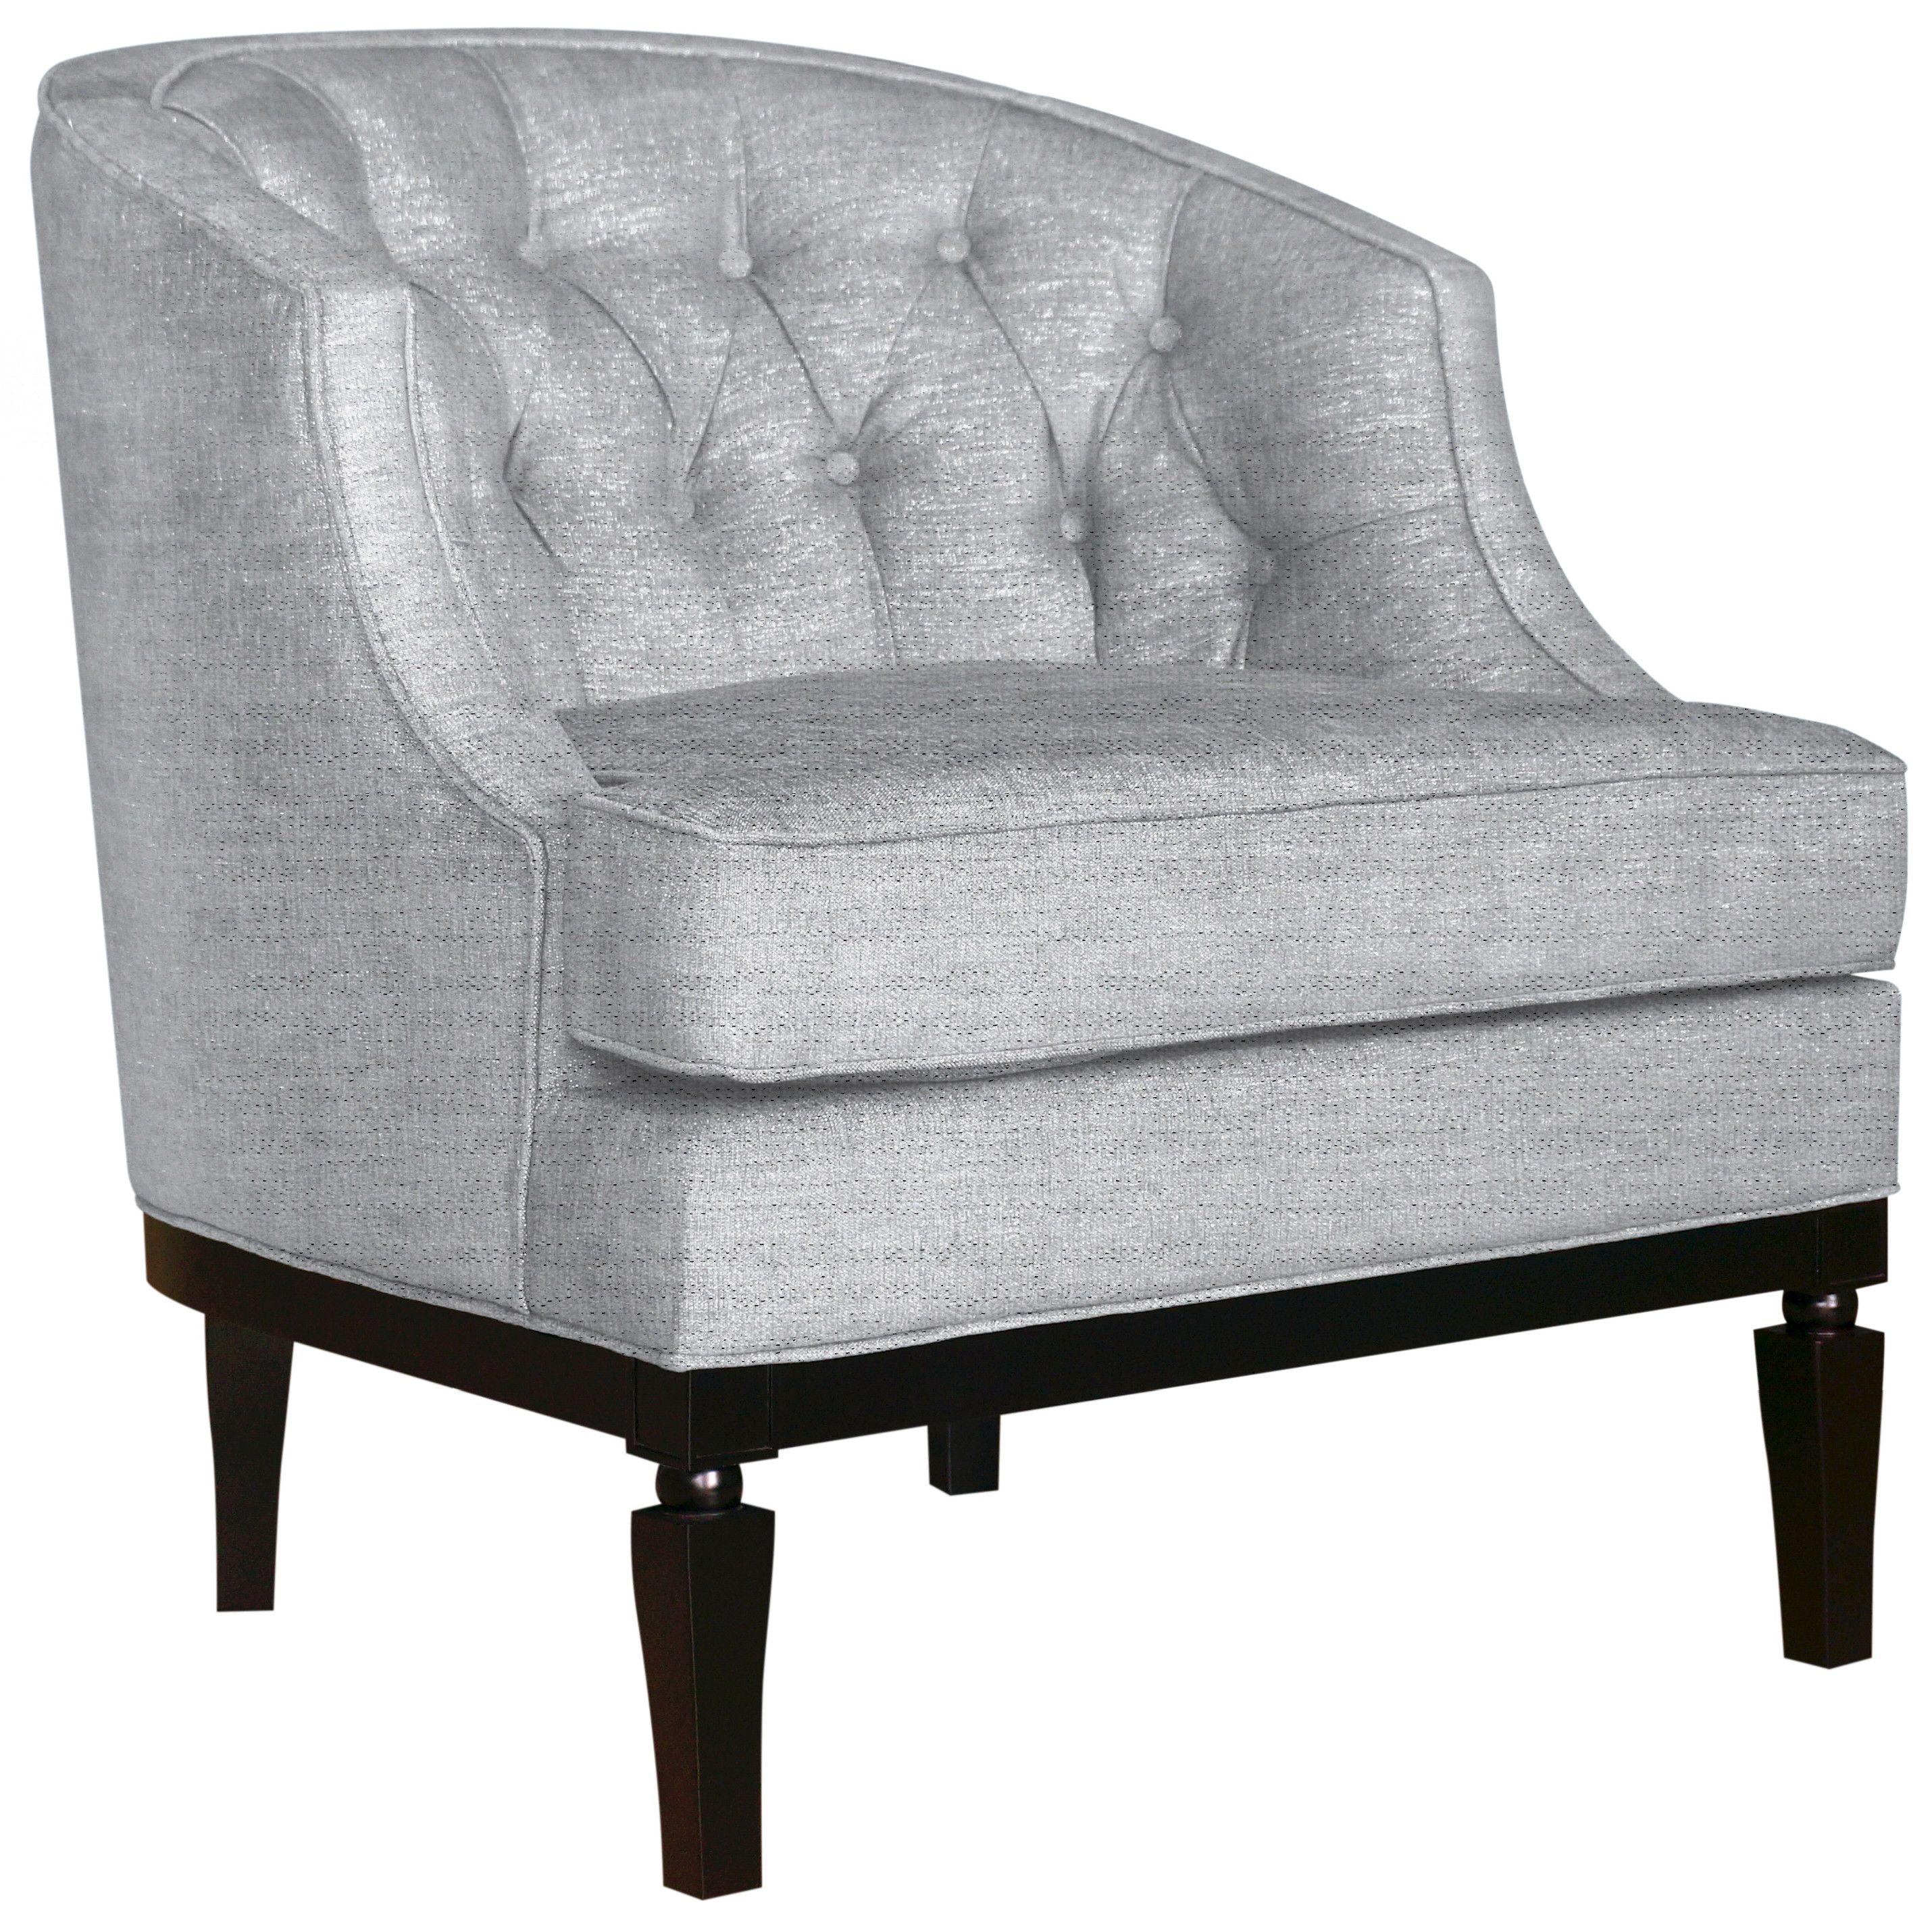 Customer Image Zoomed Fabric Accent Chair Chair